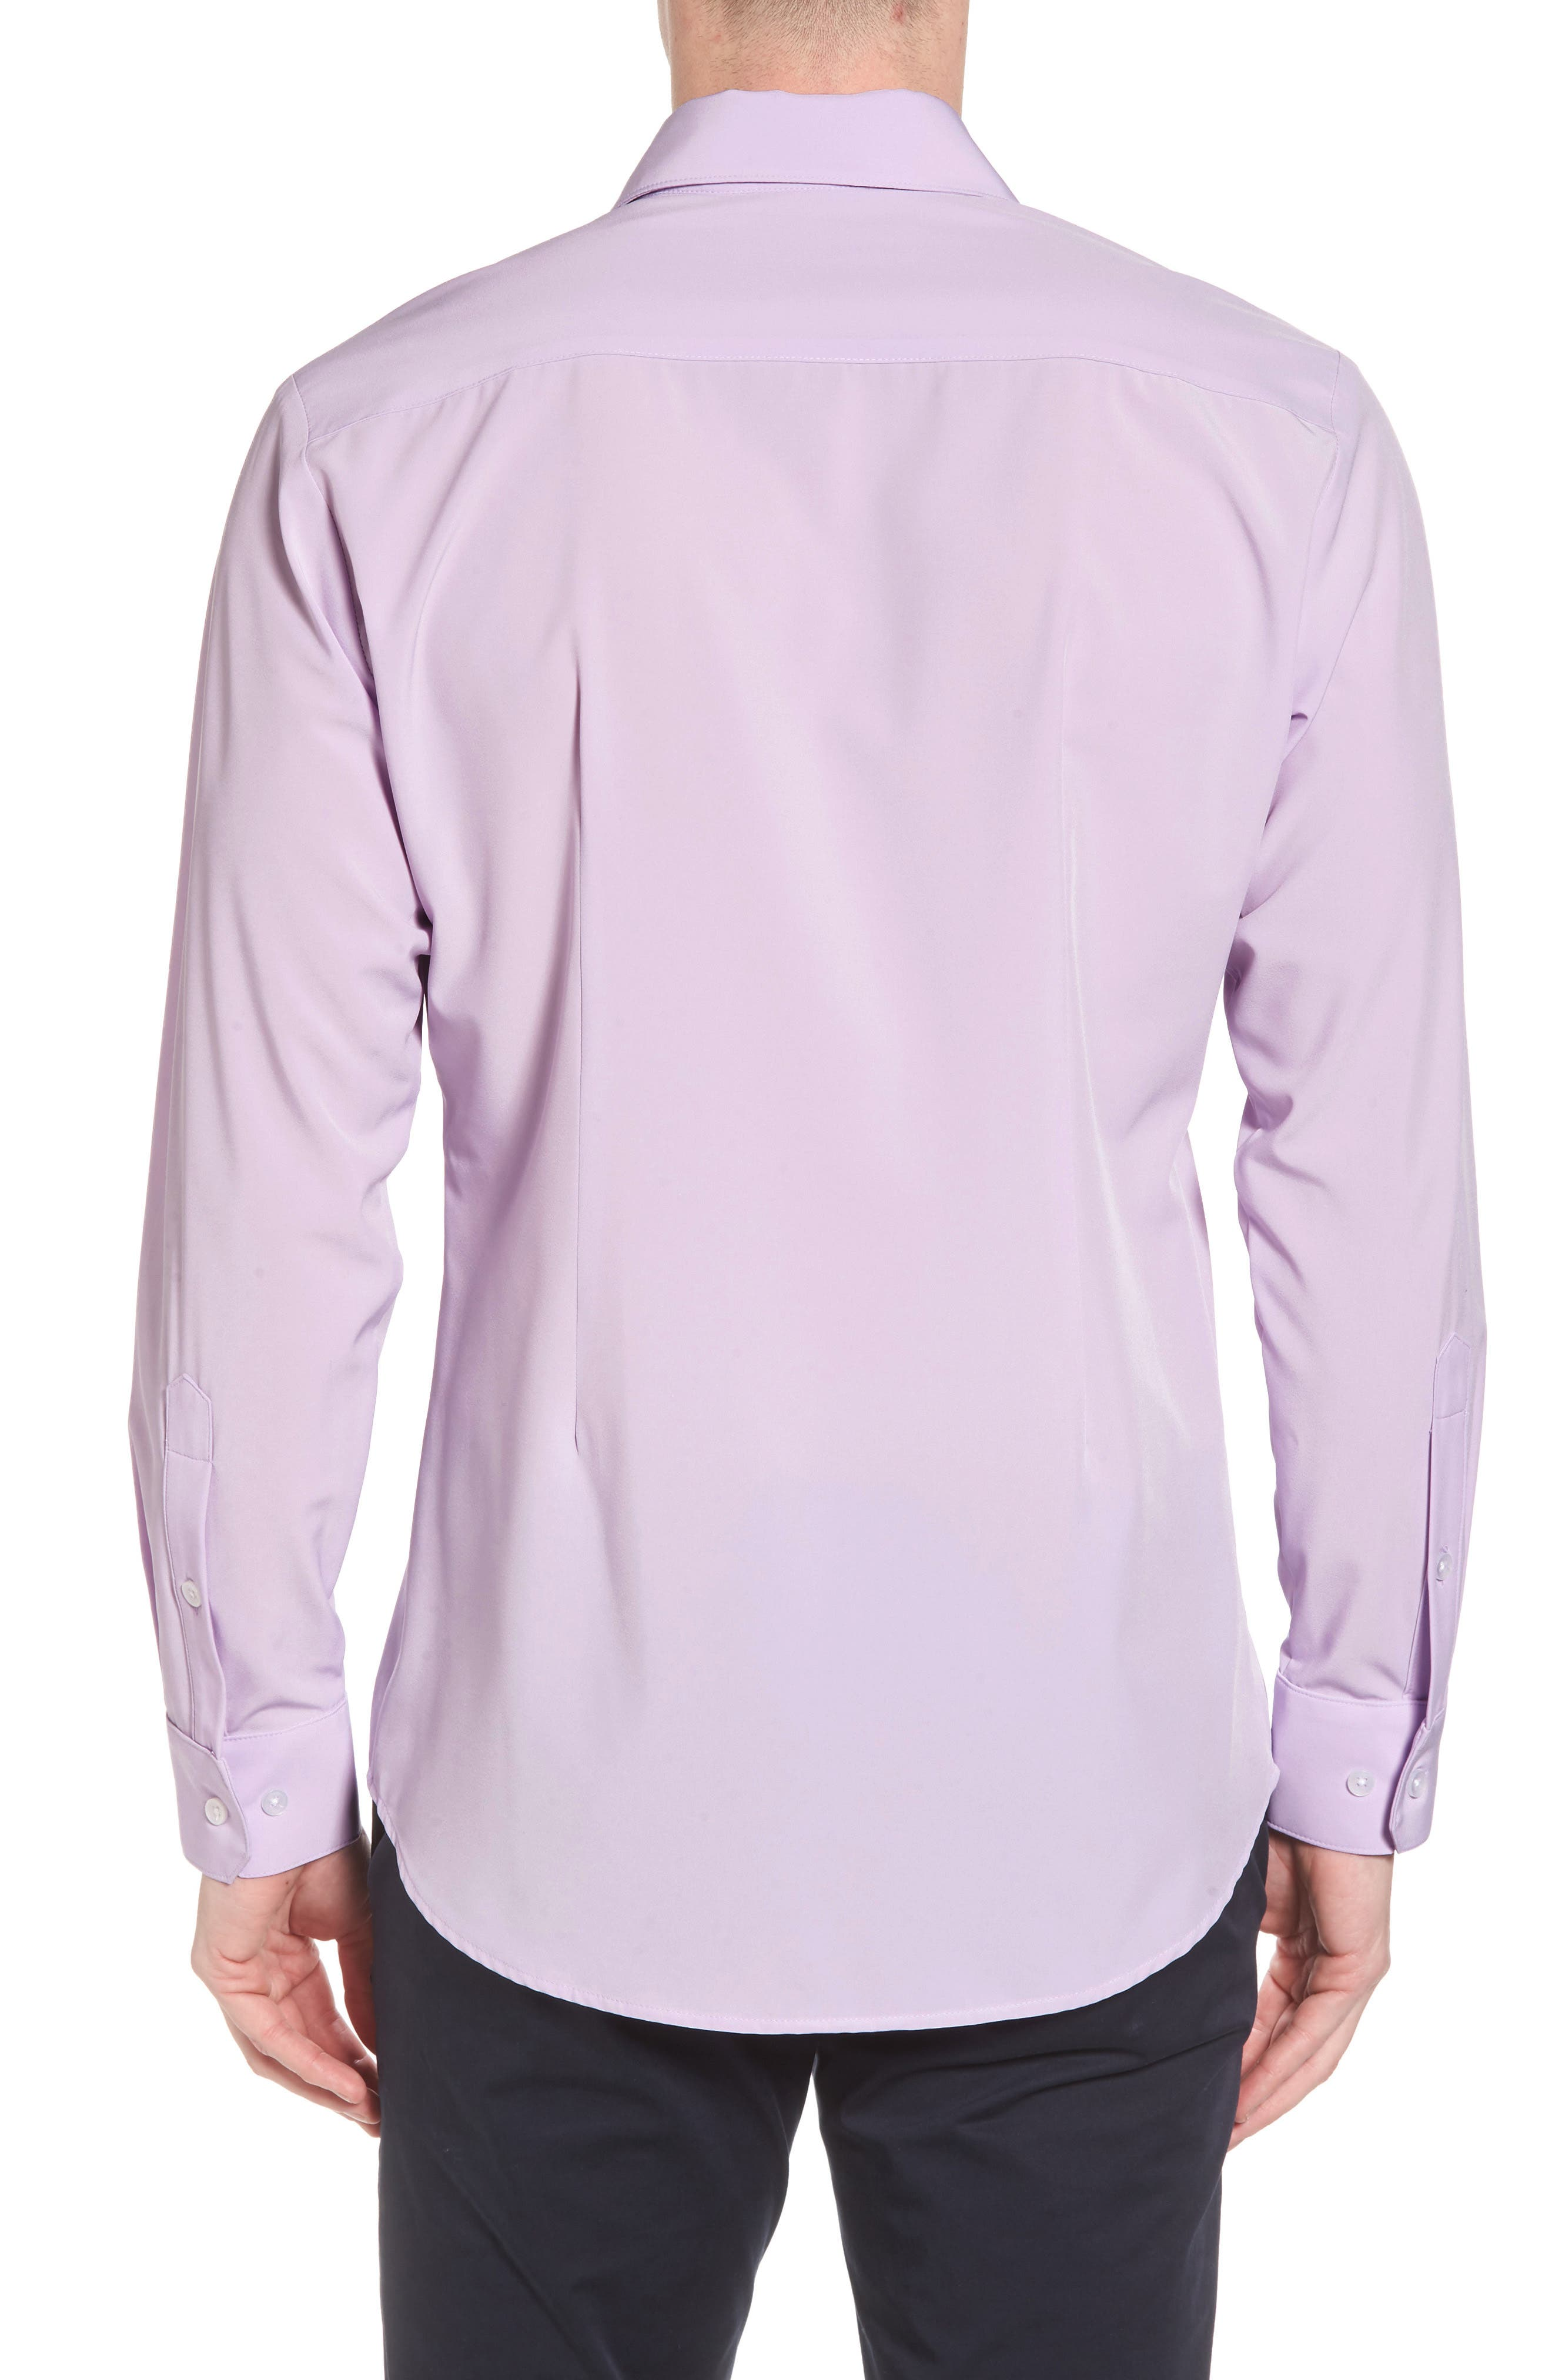 Henderson Performance Sport Shirt,                             Alternate thumbnail 2, color,                             Purple